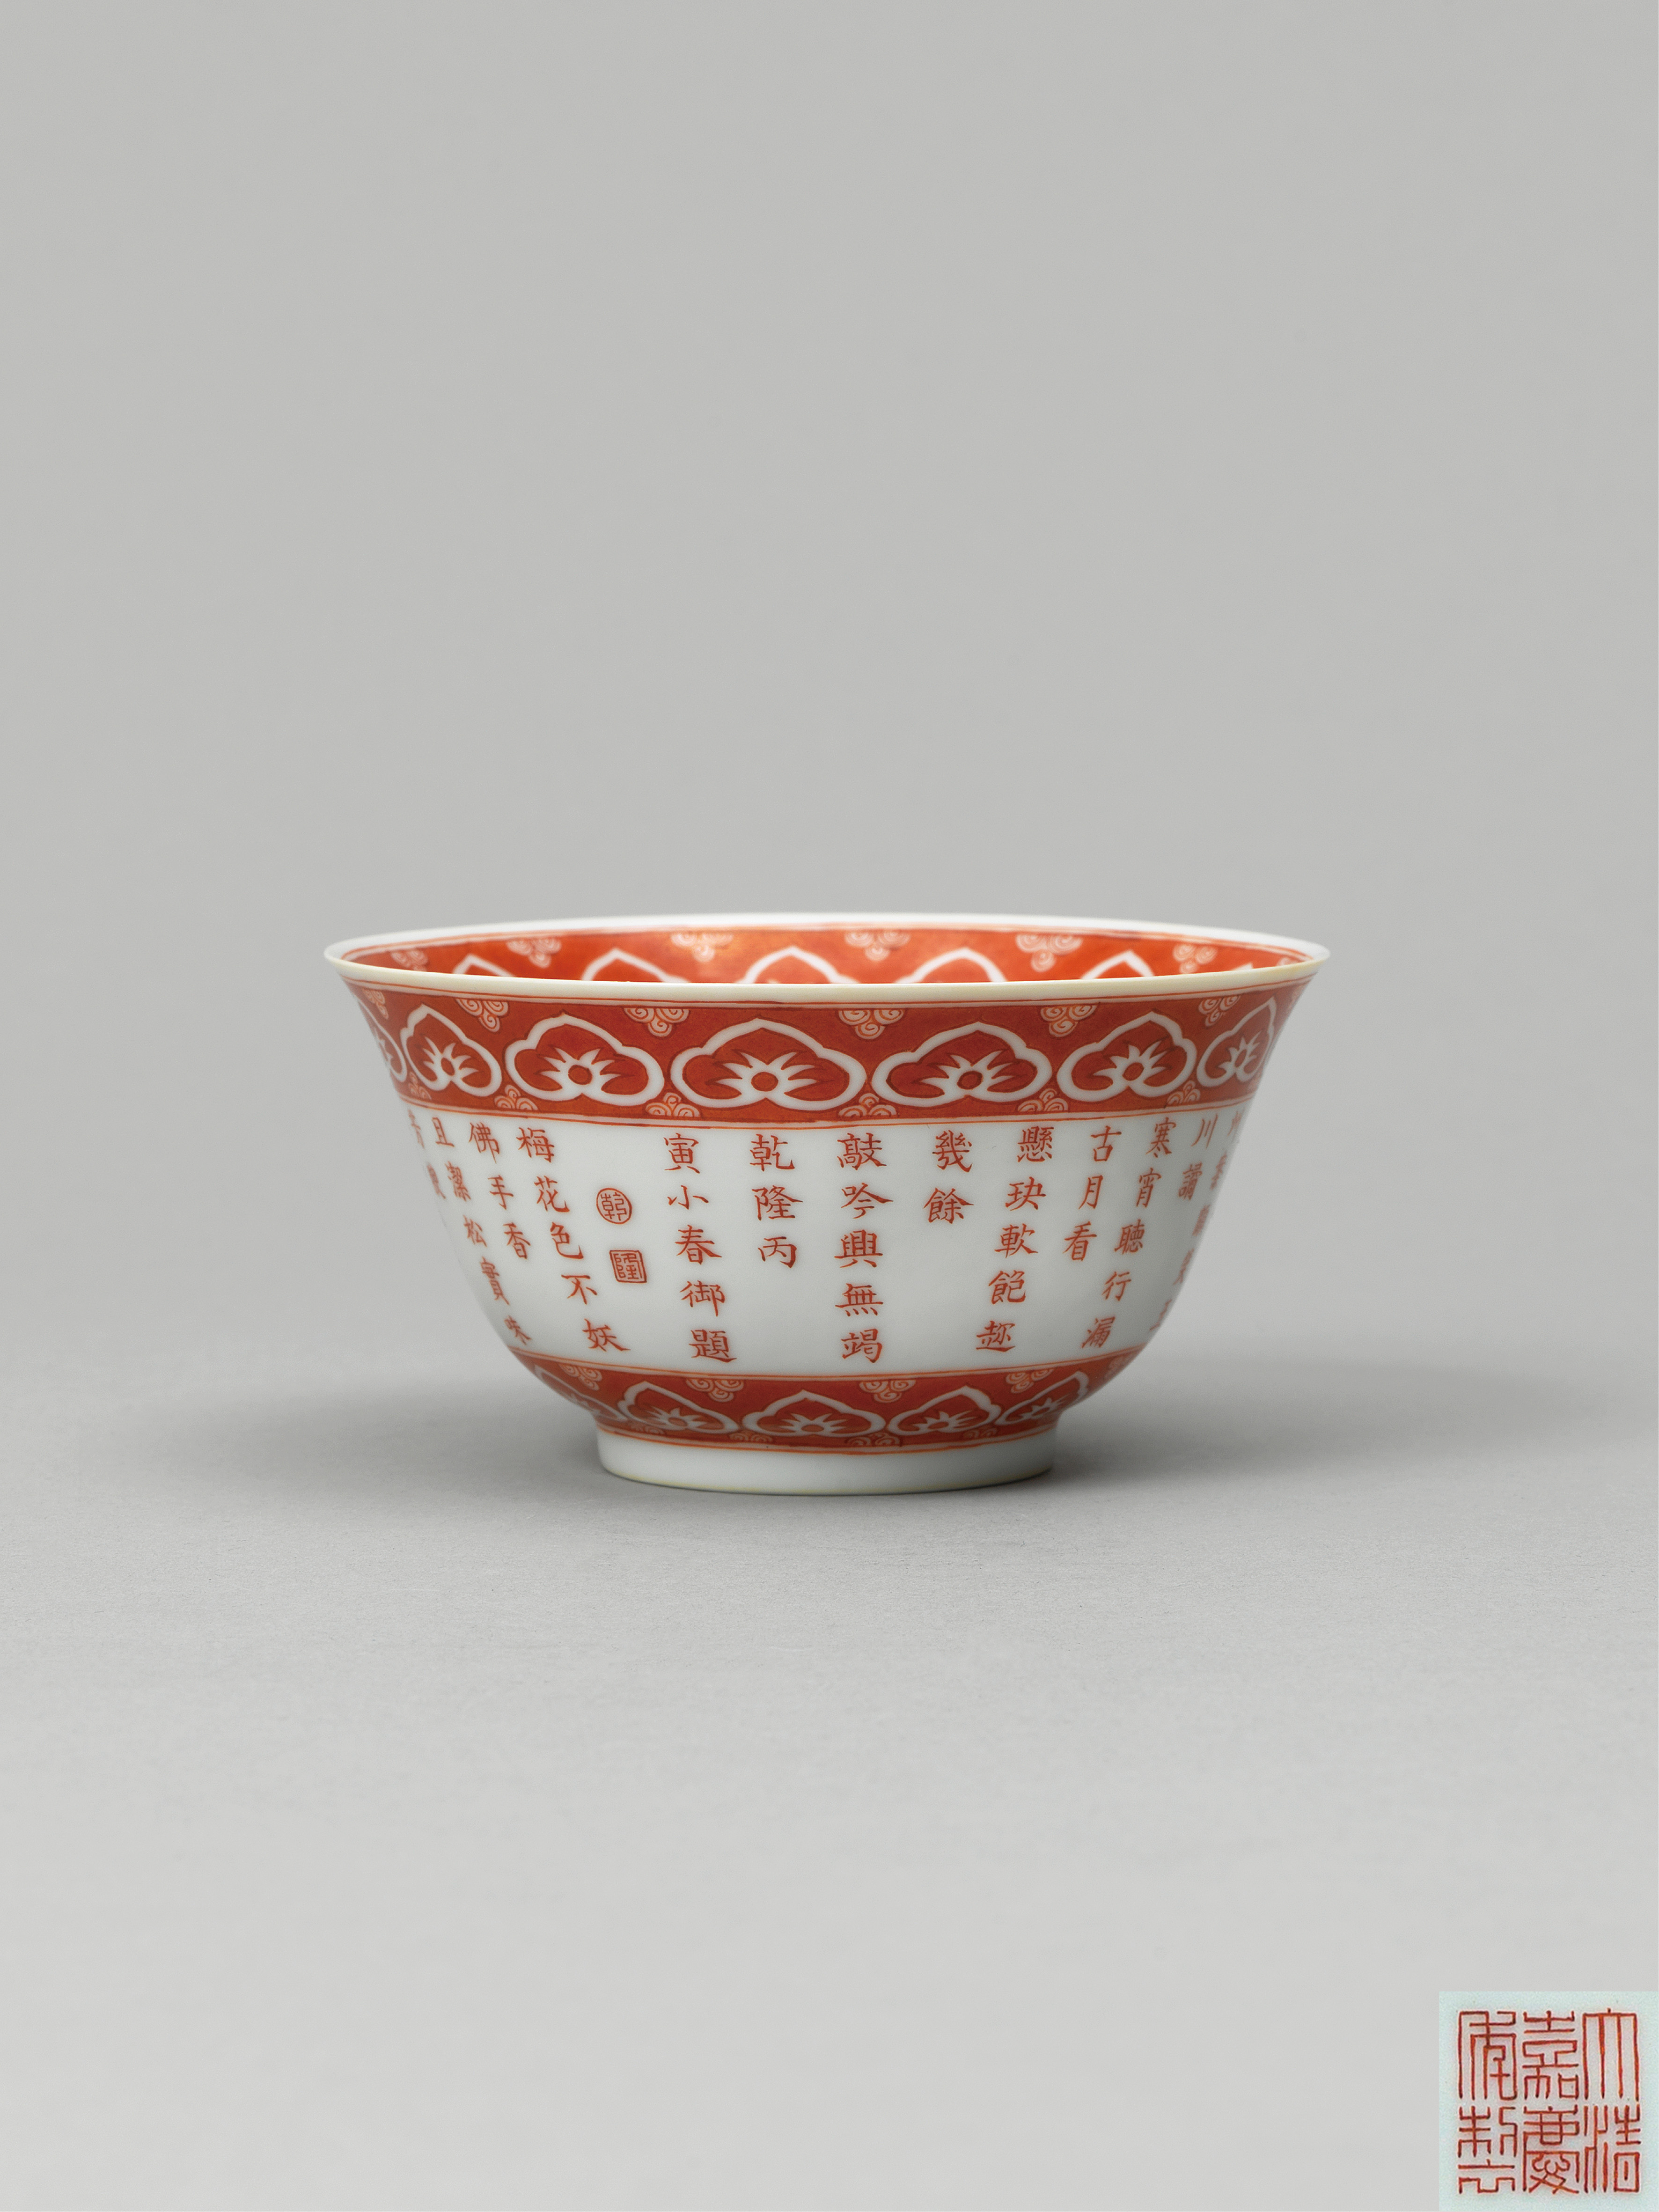 Lot 34 - An imperial inscribed iron-red-decorated bowl, Qing Dynasty, Jiaqing mark and of the period